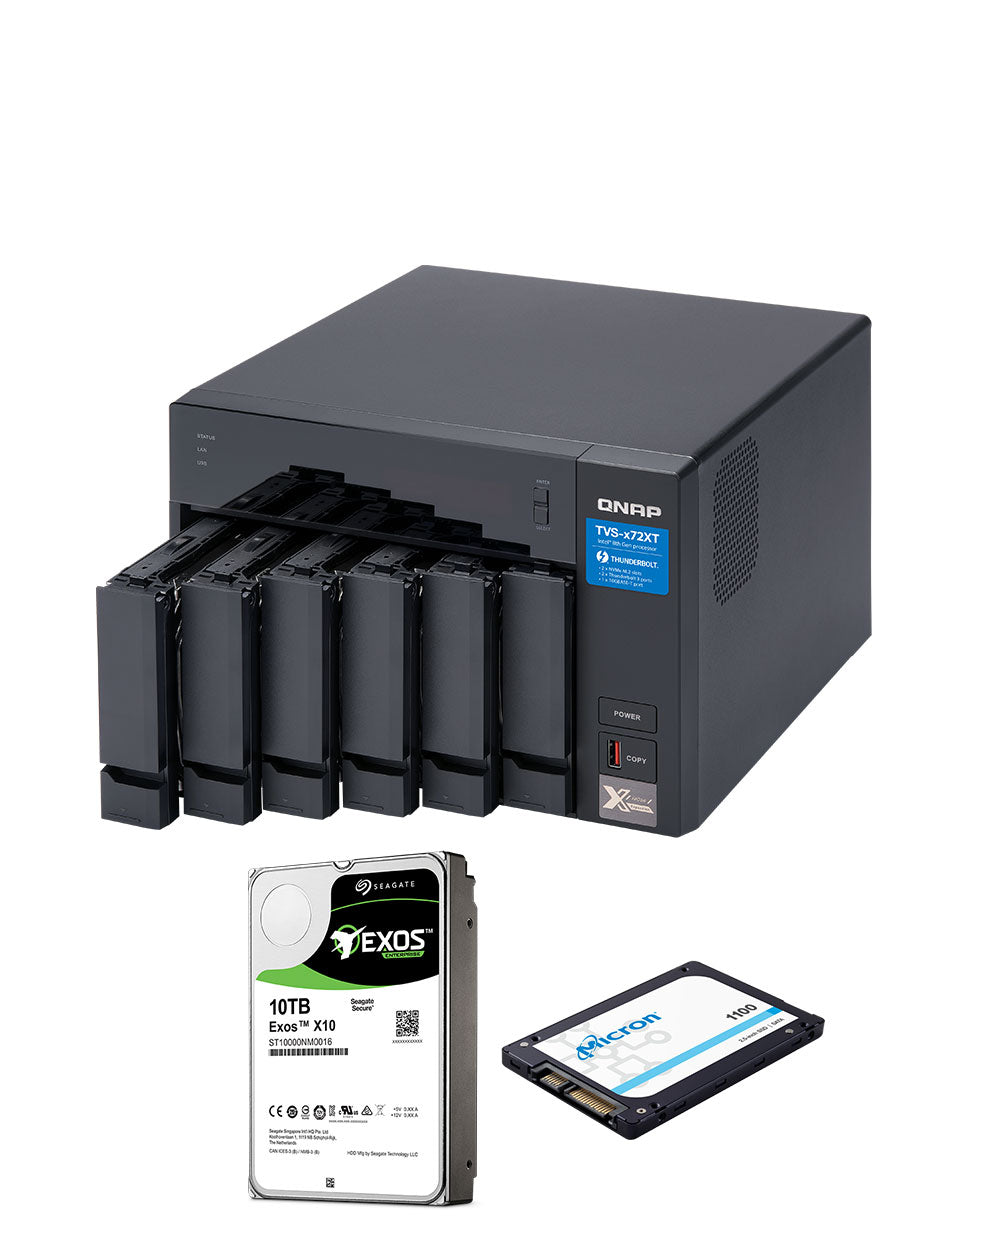 QNAP TVS-672XT-i3-8G 30TB with 10TB Exos Helium Drives and 2 x 256GB SSD